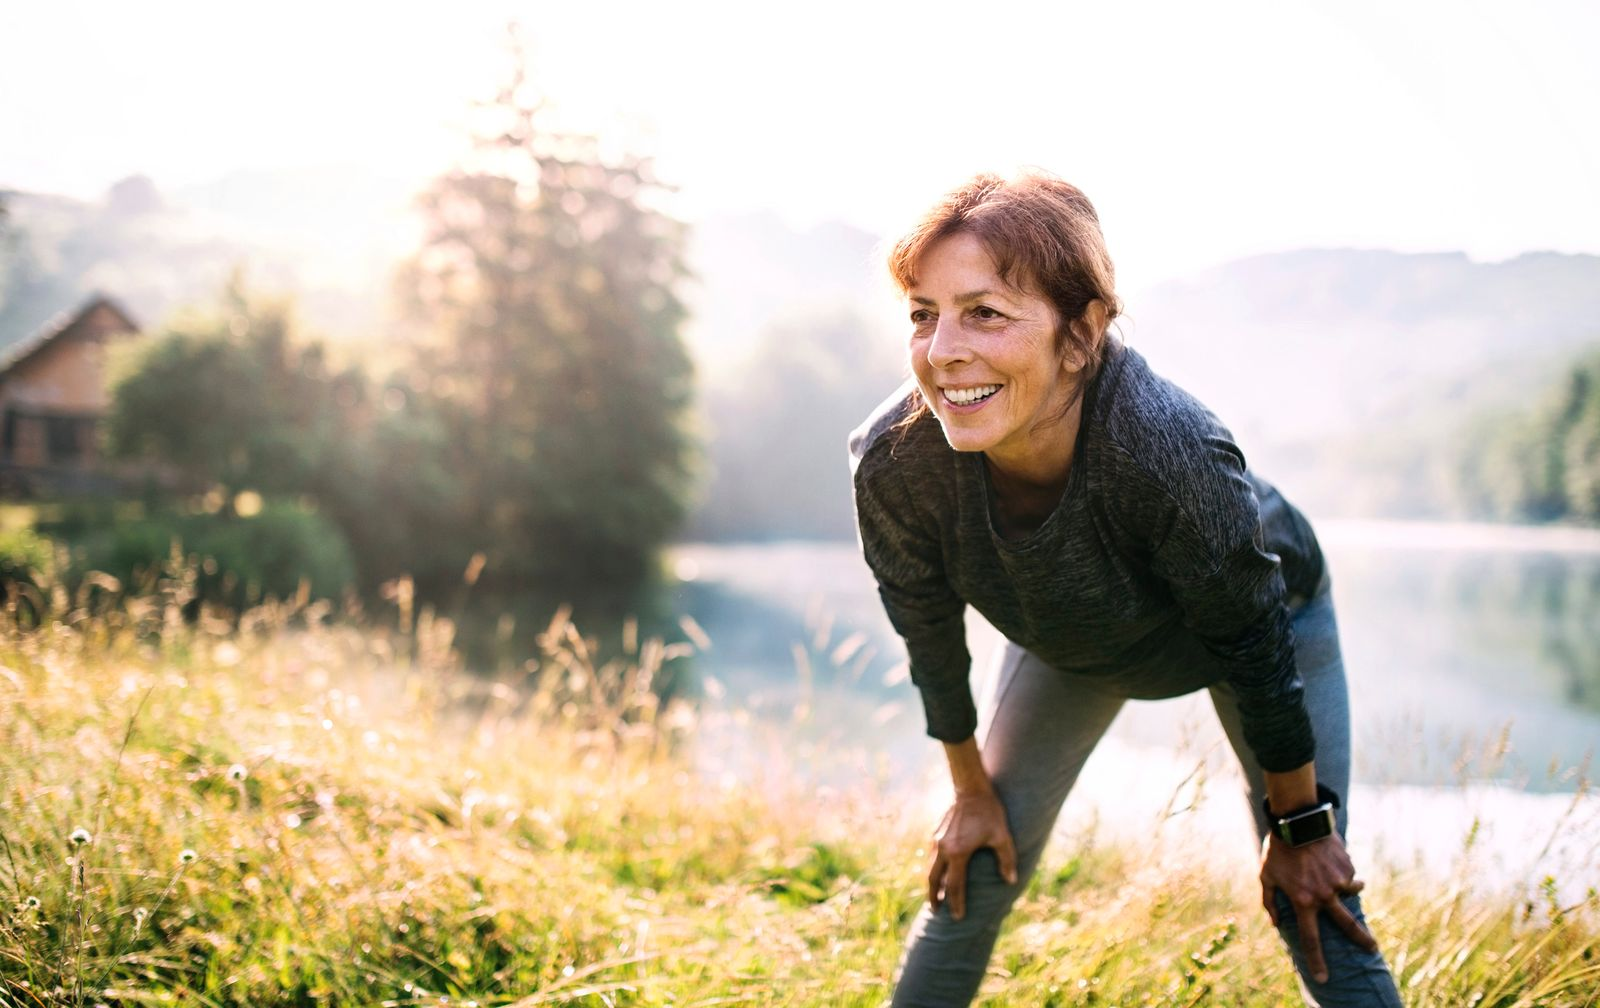 Senior woman resting after exercise outdoors in nature in the foggy morning. Copy space.